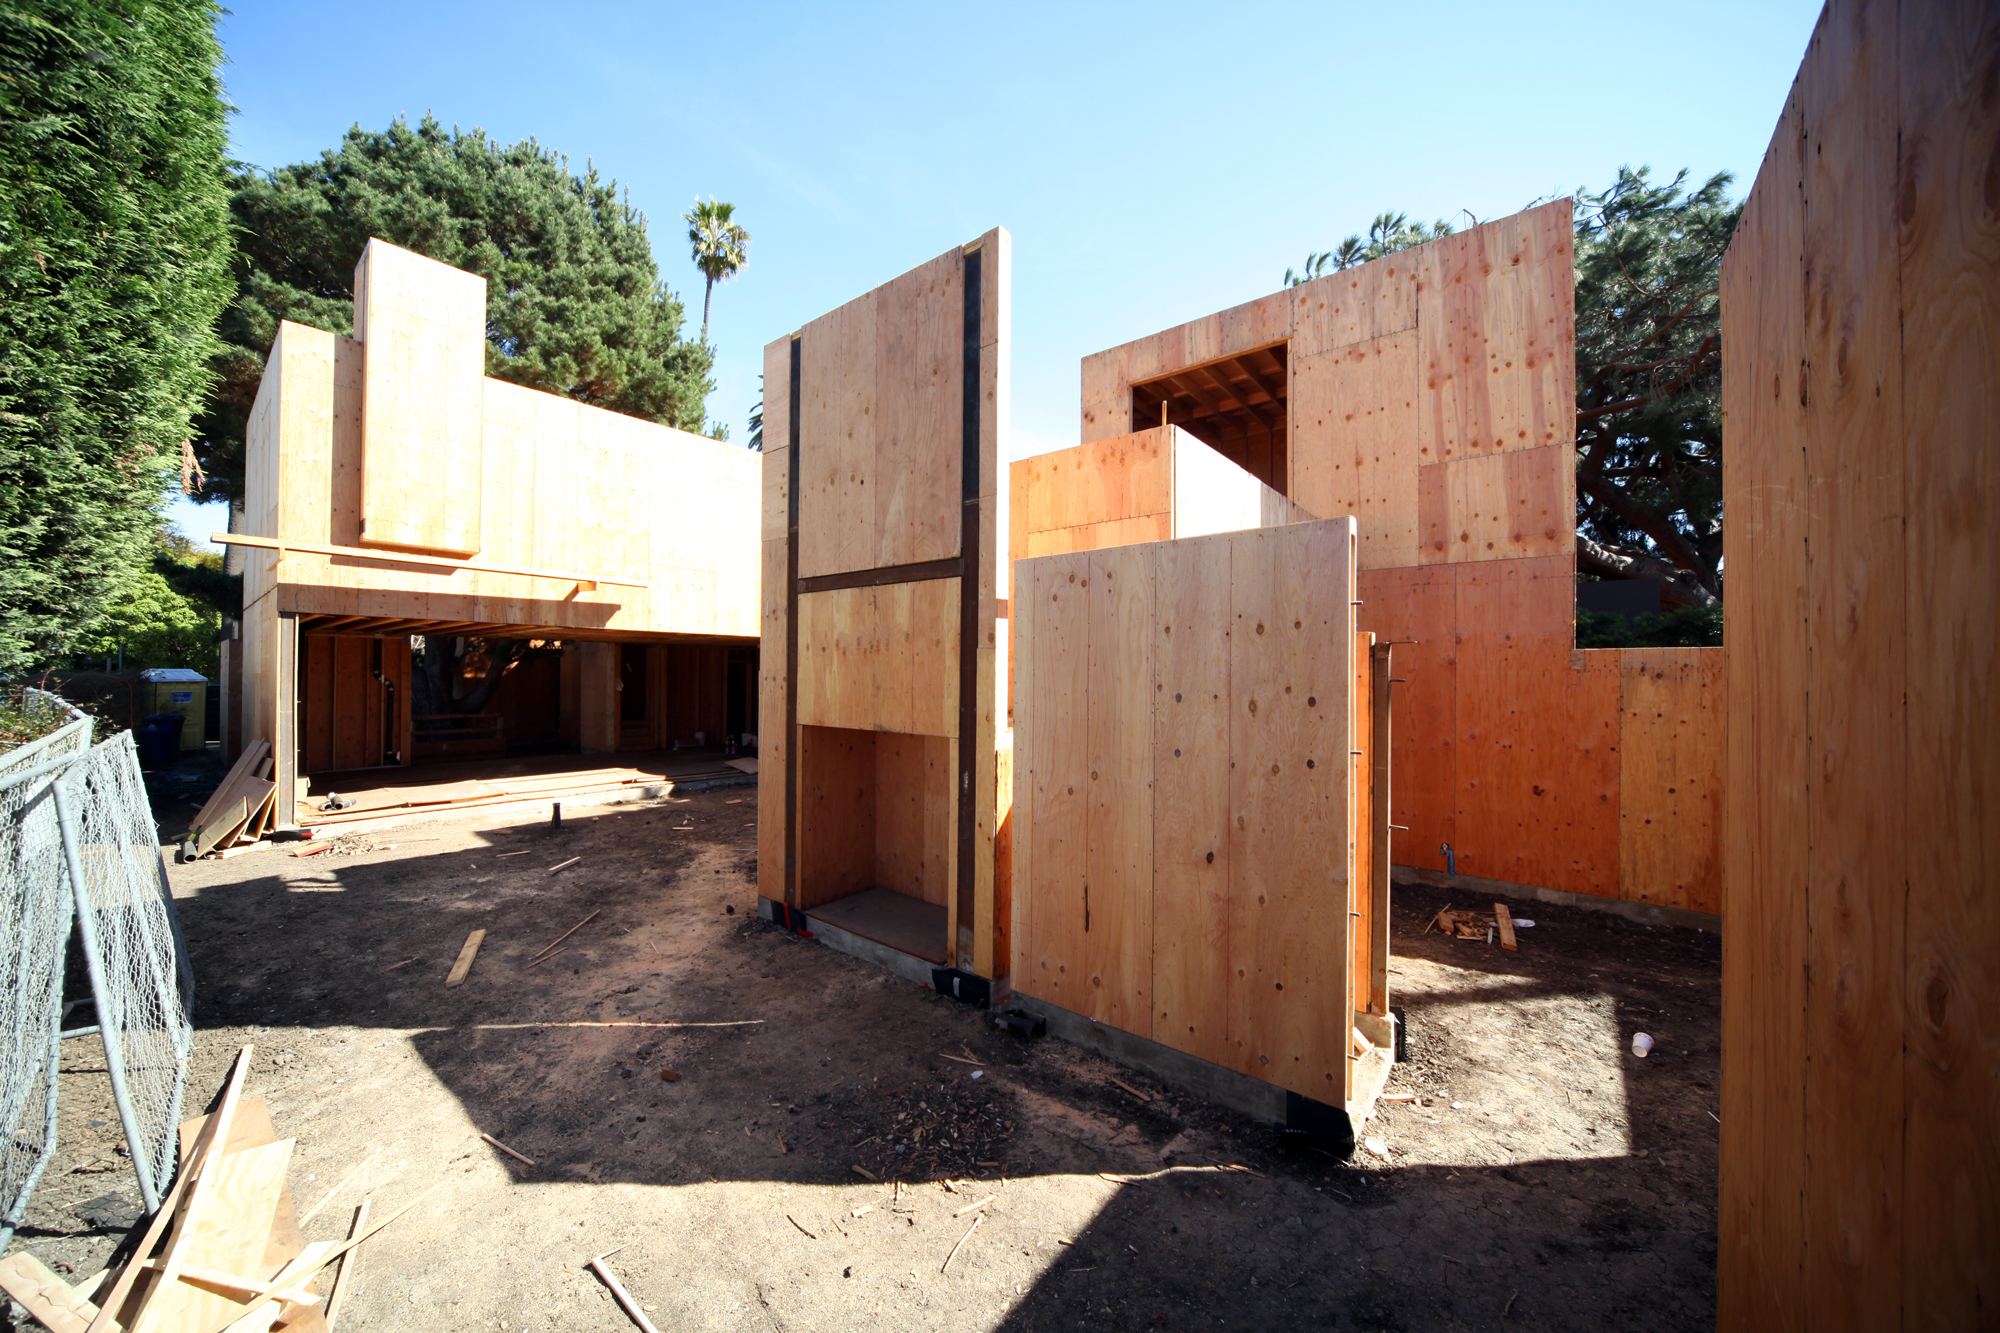 Here's a shot looking east from the garage towards the main living room with its large door opening. On the right is the master bedroom courtyard. The box shown under the H-shaped steel members will eventually be a fireplace from Spark Modern Fires